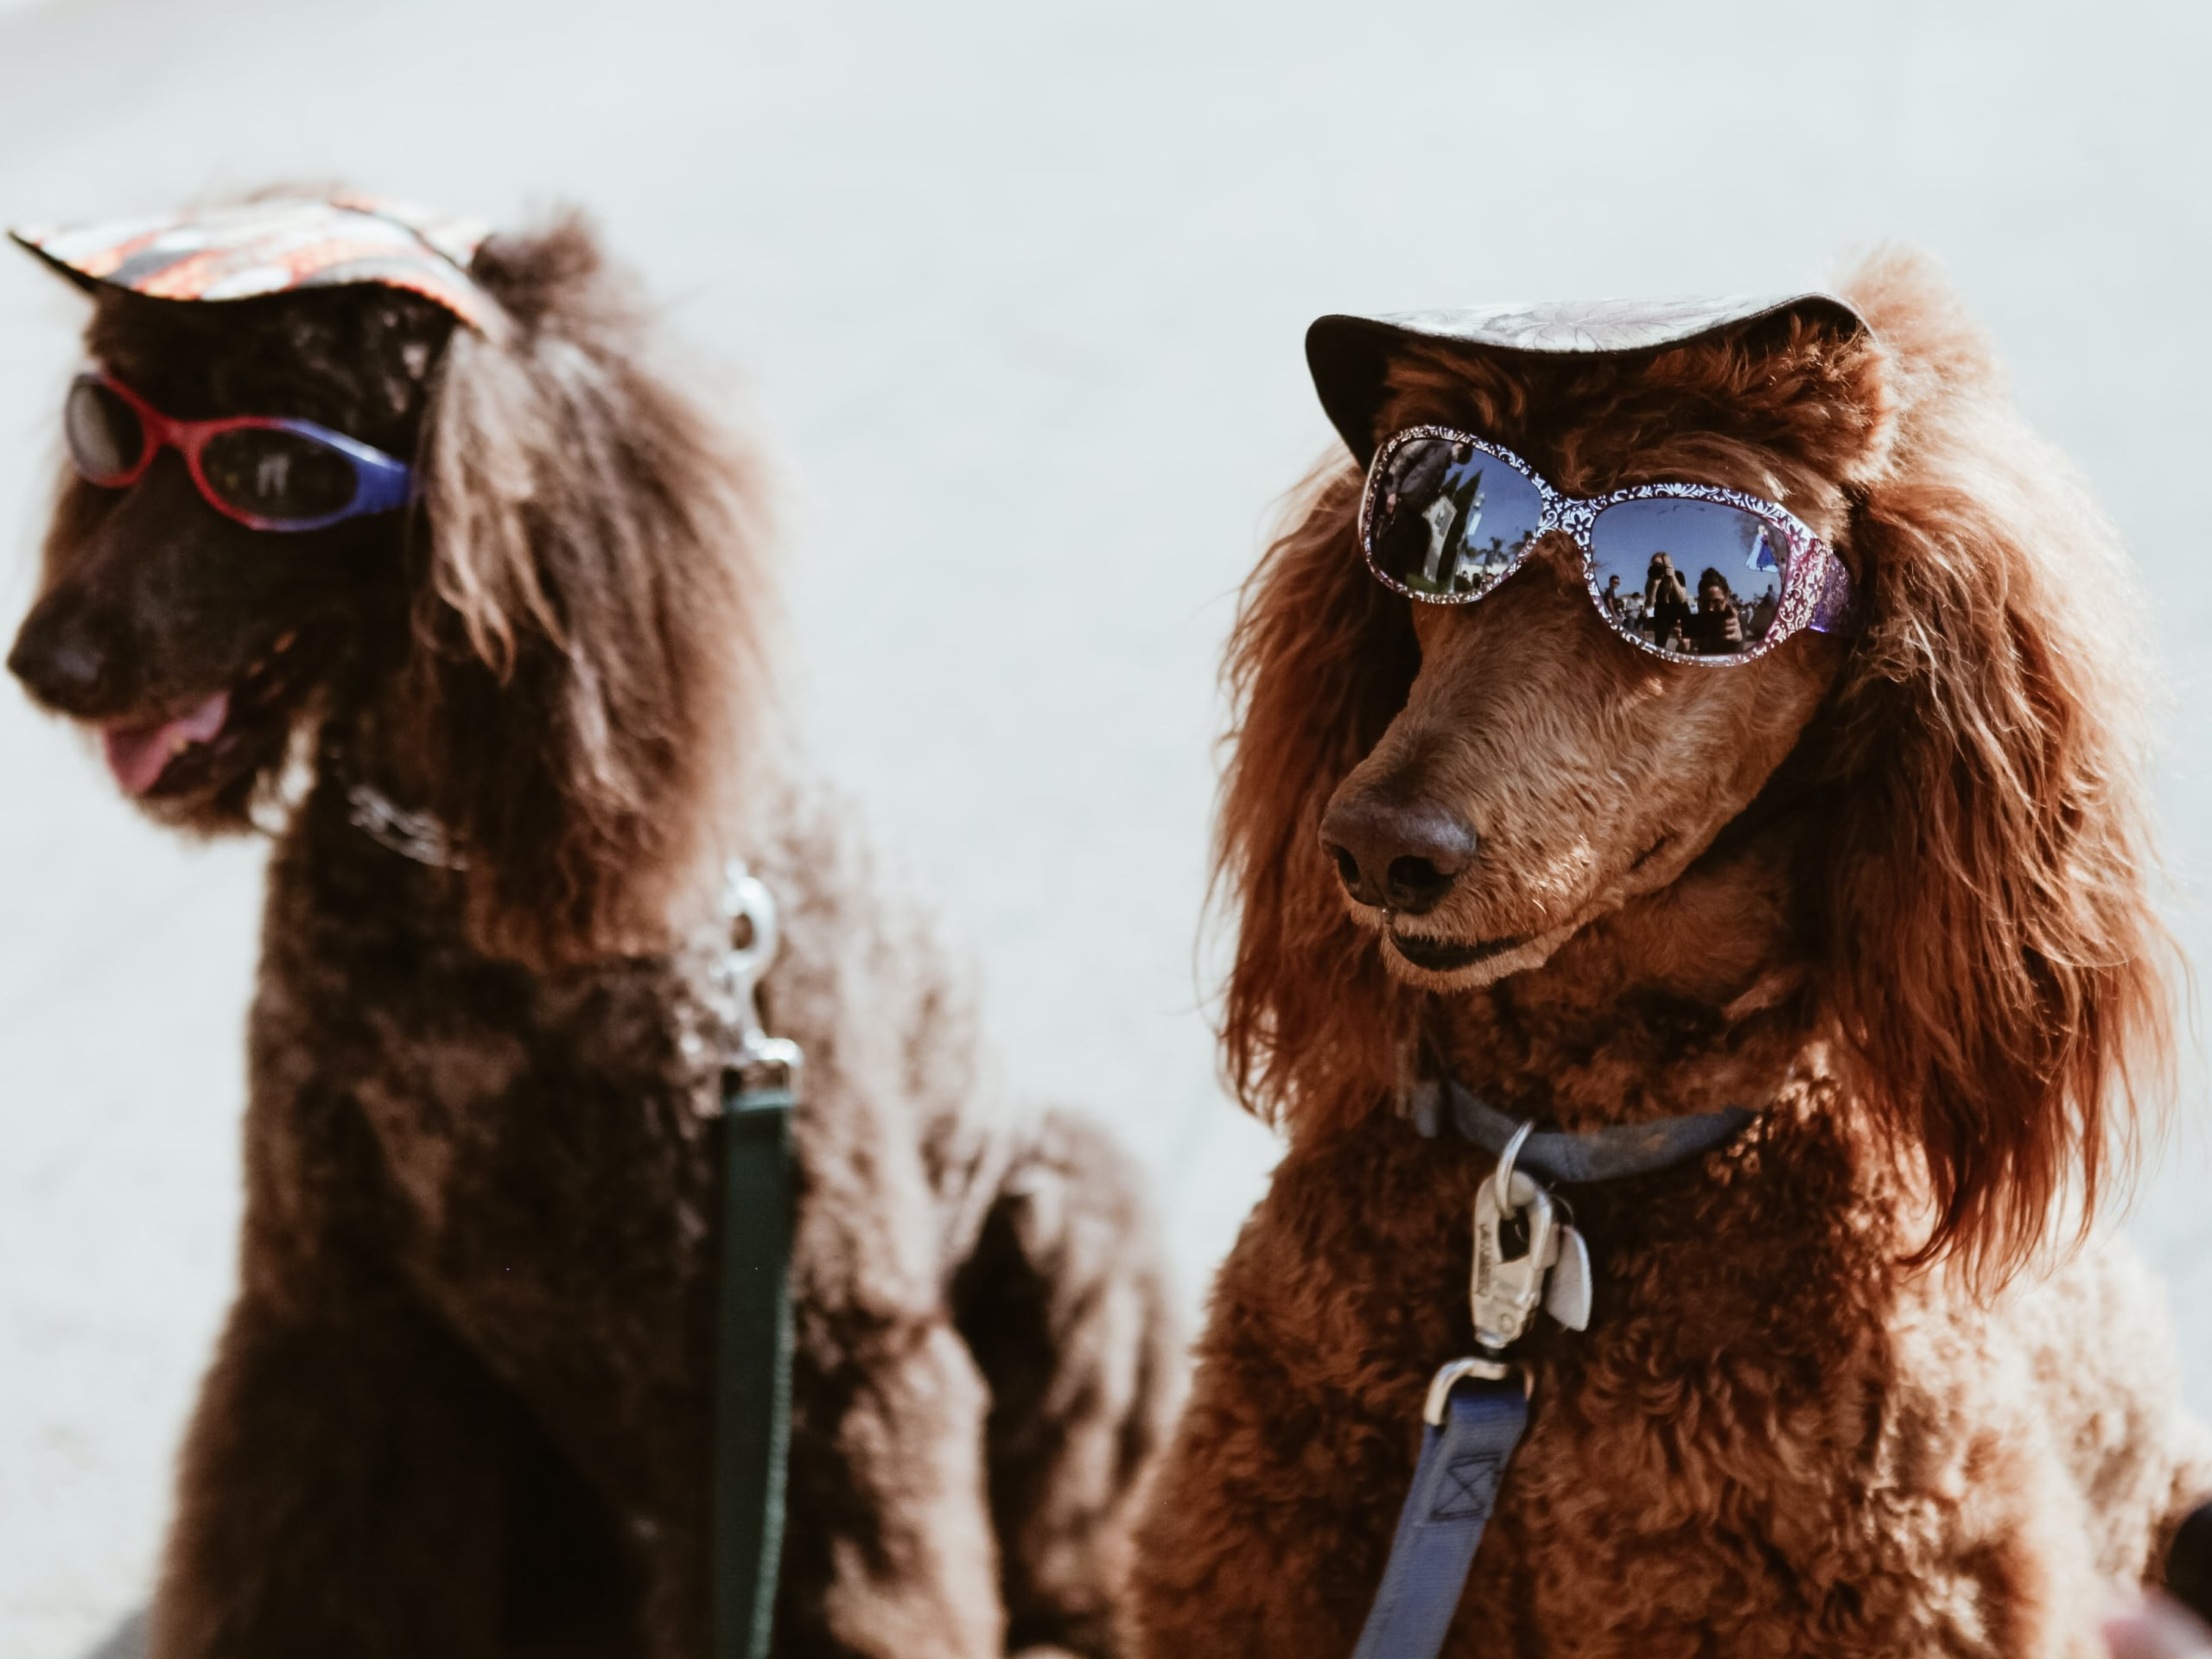 Two dogs enjoying the sunshine in dog hats and sunglasses, their collars and ID tags.